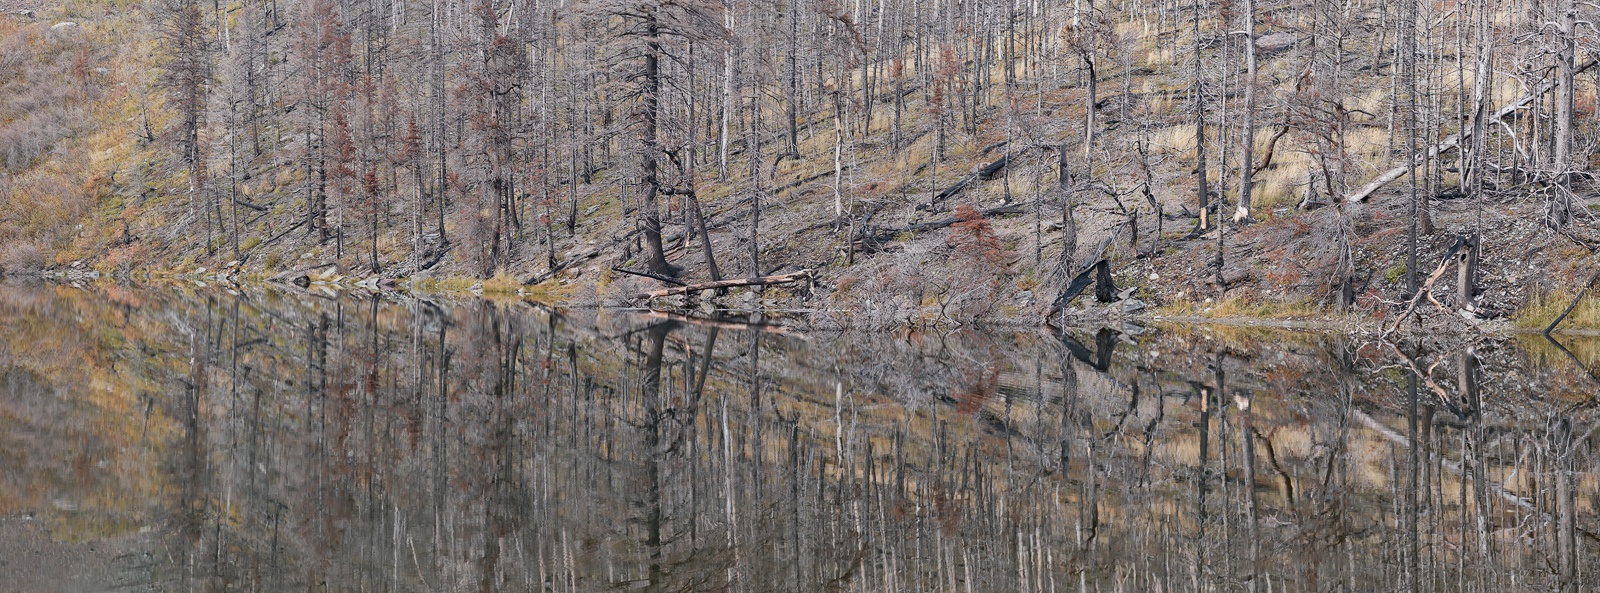 panoramic, landscape, montana, fire, wildfire, fall, autumn, reflection, lake, panoramique, photographie, photo